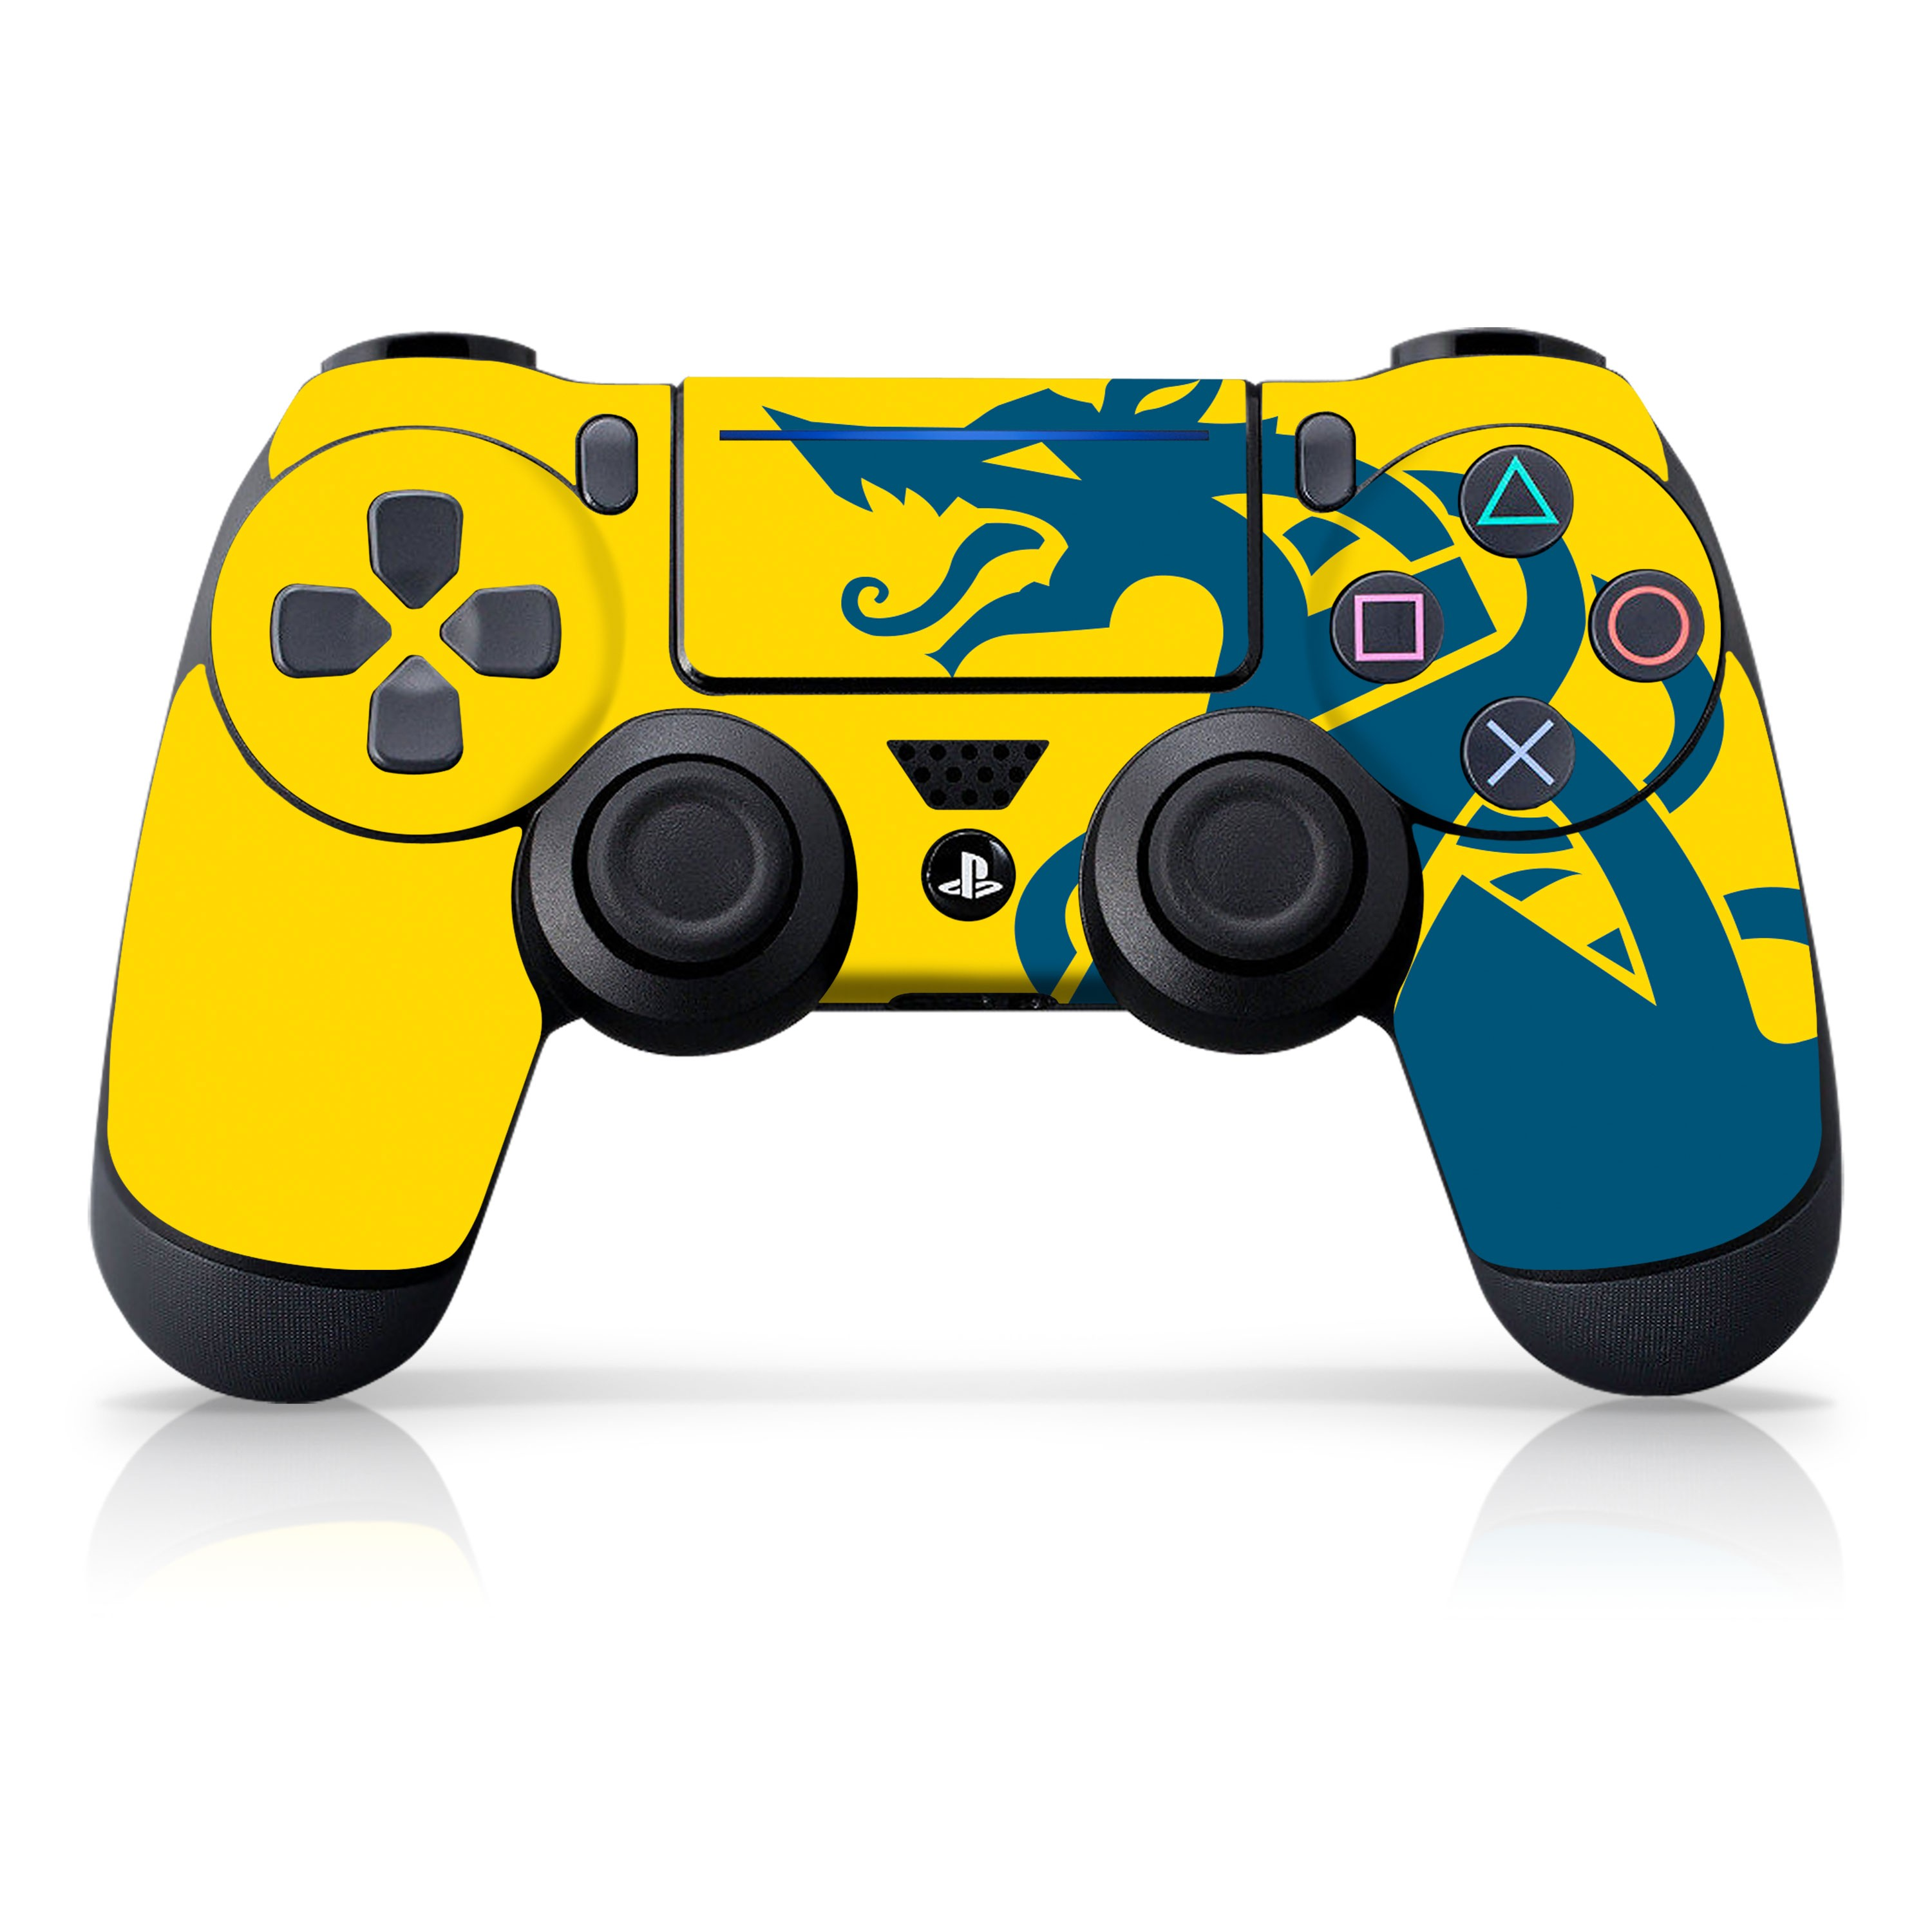 "Officially Licensed PlayStation 4 God of War DUALSHOCK 4 Wireless Controller Skin and Tech Decals ""Blue Dragon"""